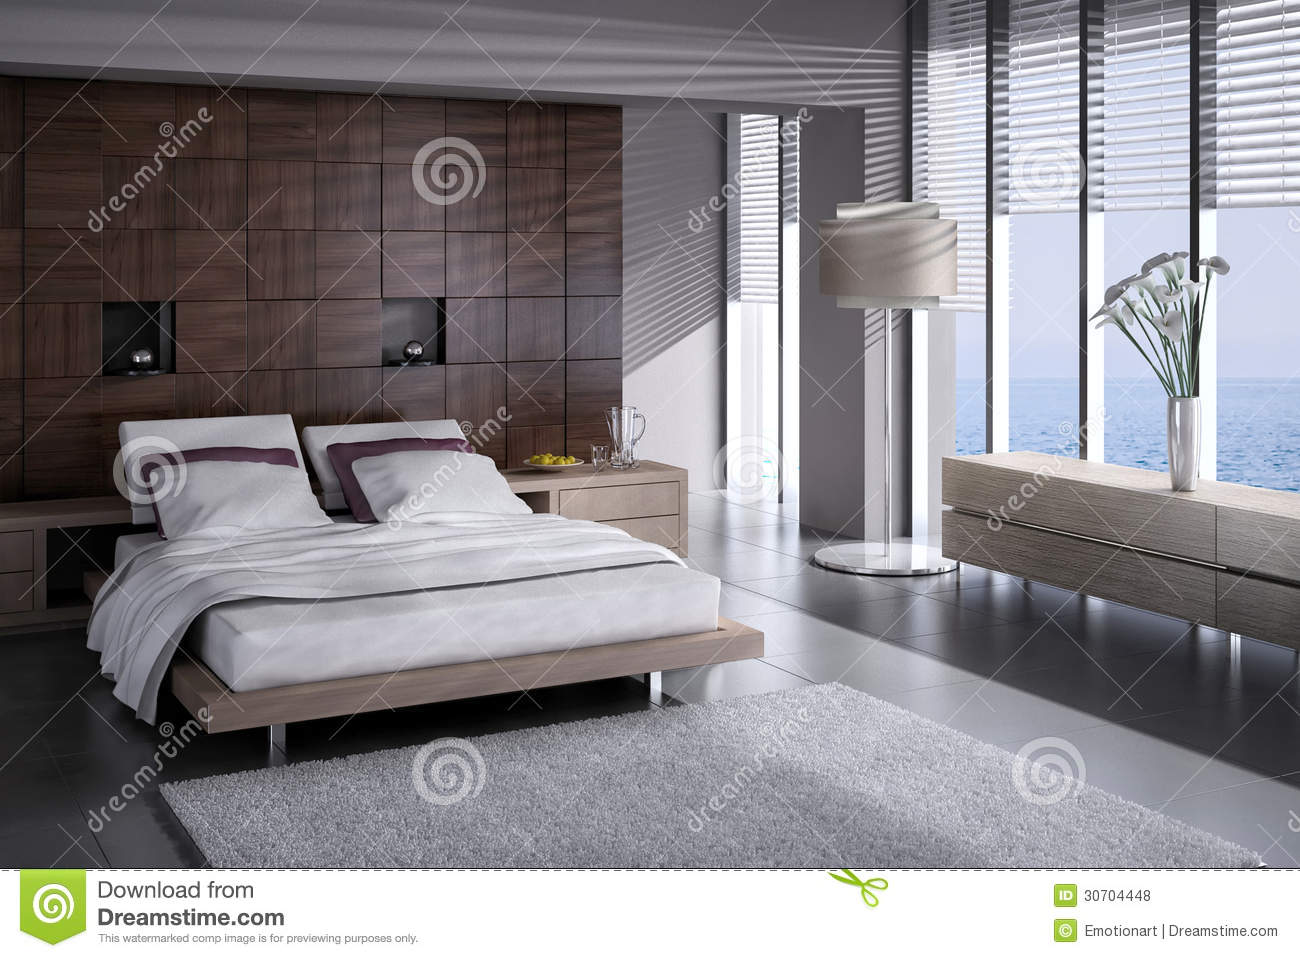 Chambre coucher exclusive de conception architecture for Conception de chambre a coucher